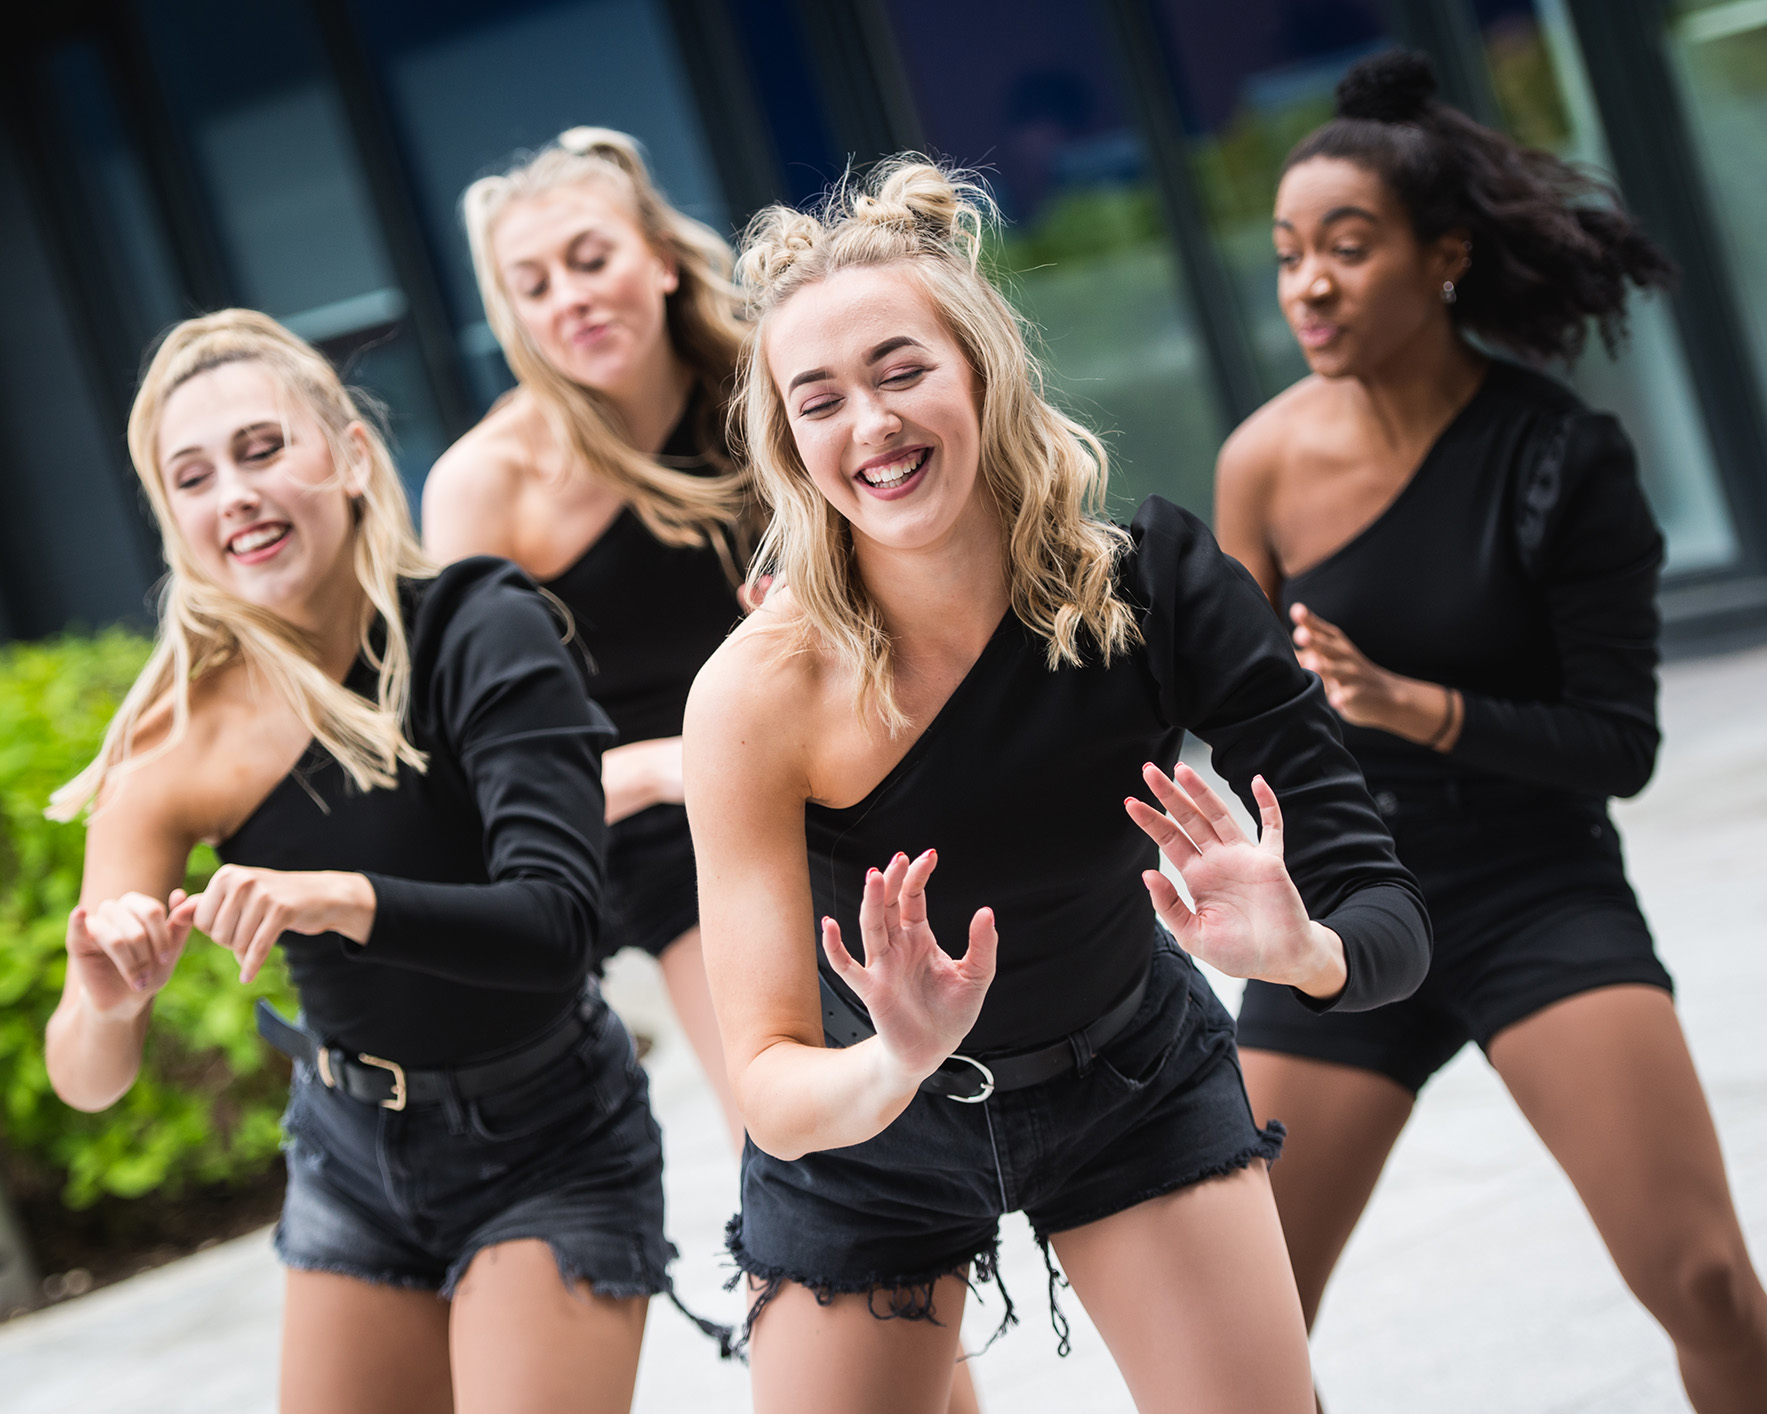 AUB's BA (Hons) Dance programme ranked top in the UK